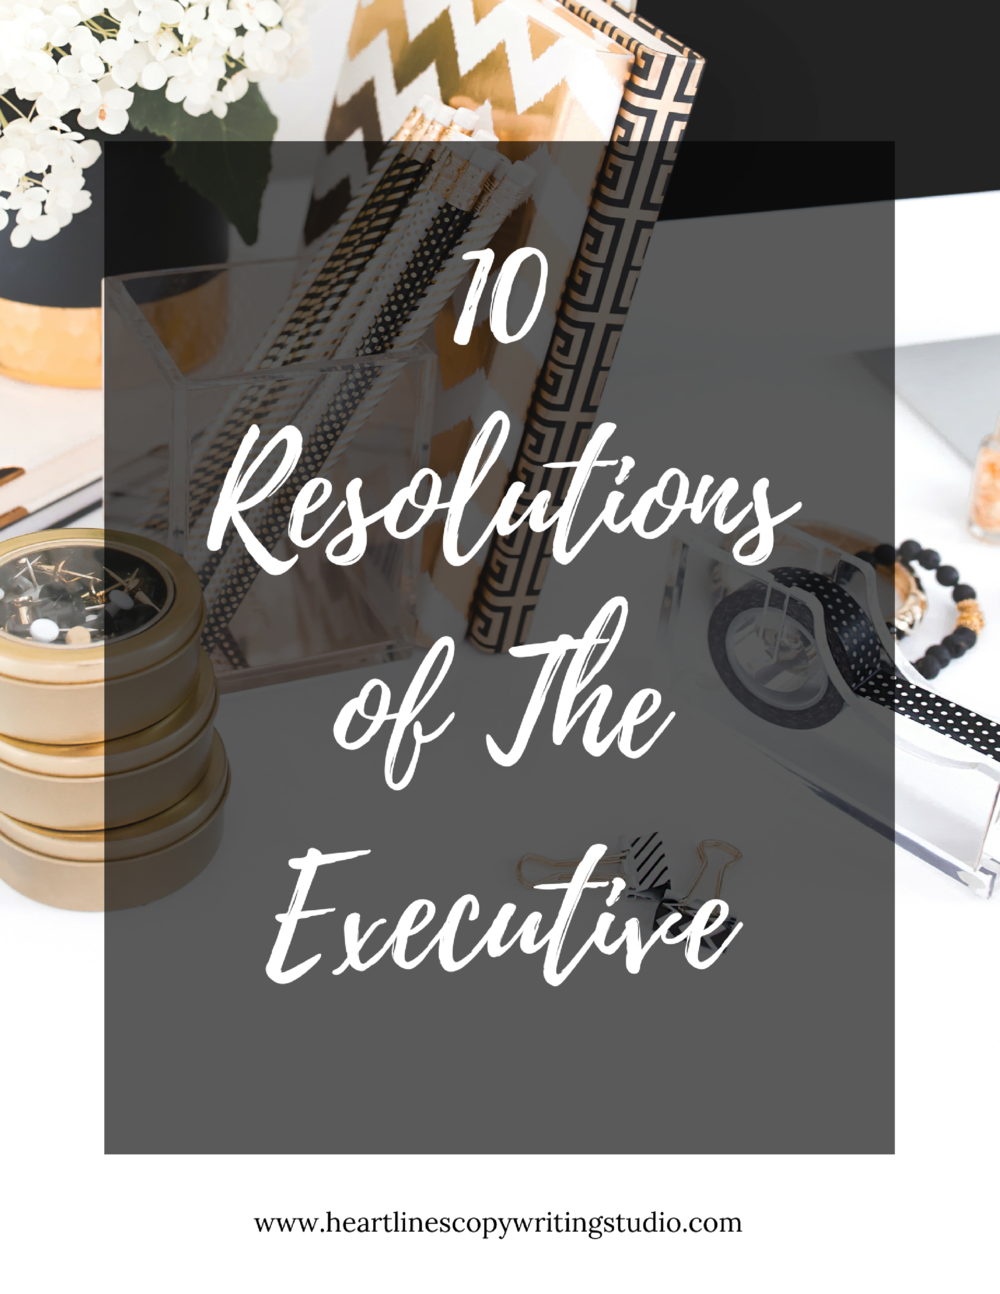 Download the PDF version of The 10 Resolutions of The Executive right here.